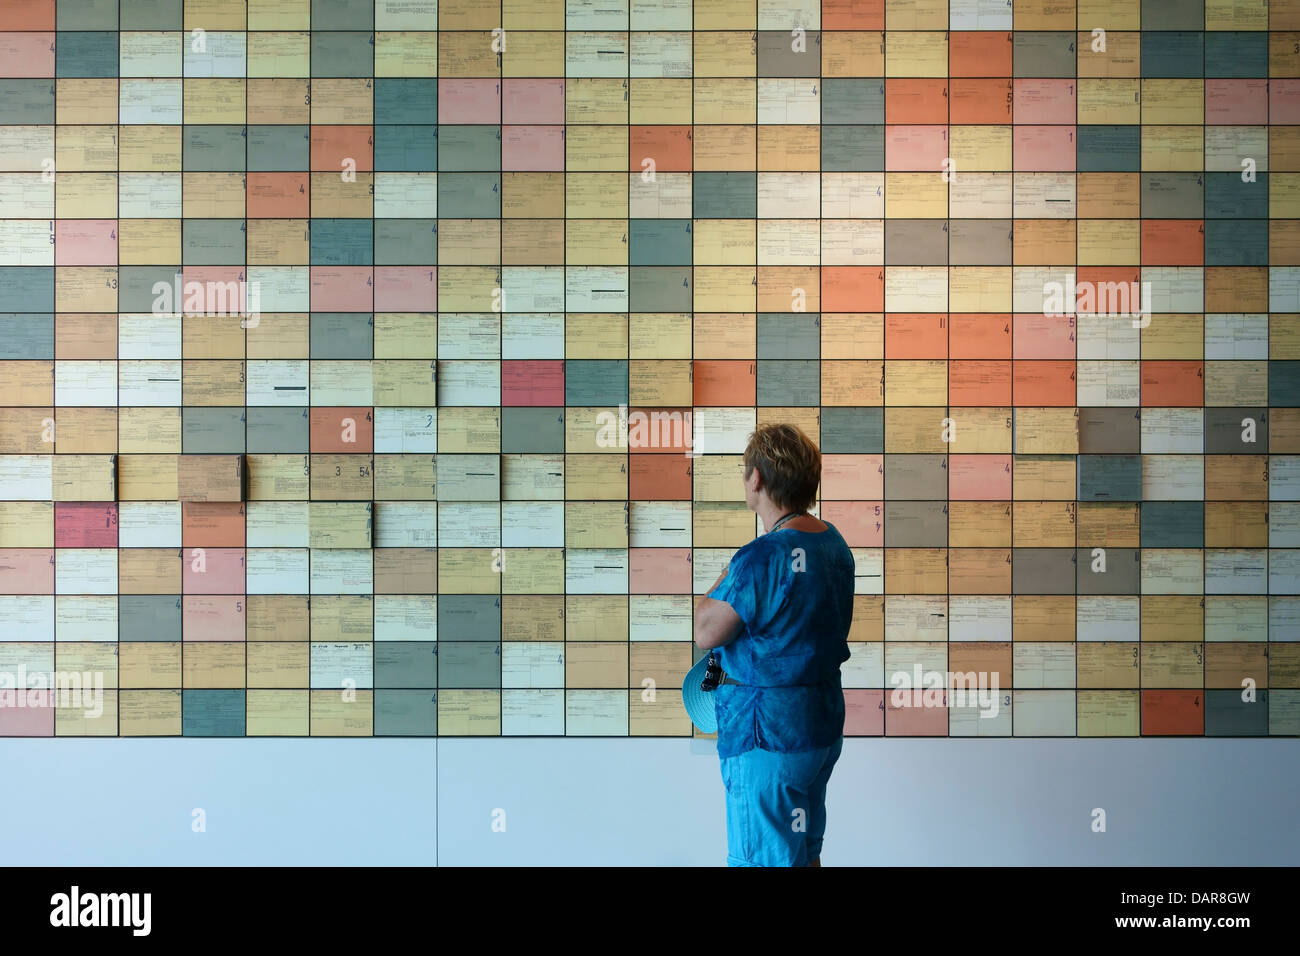 Berlin. Germany. Index cards of former SS members, Topography of Terror. - Stock Image